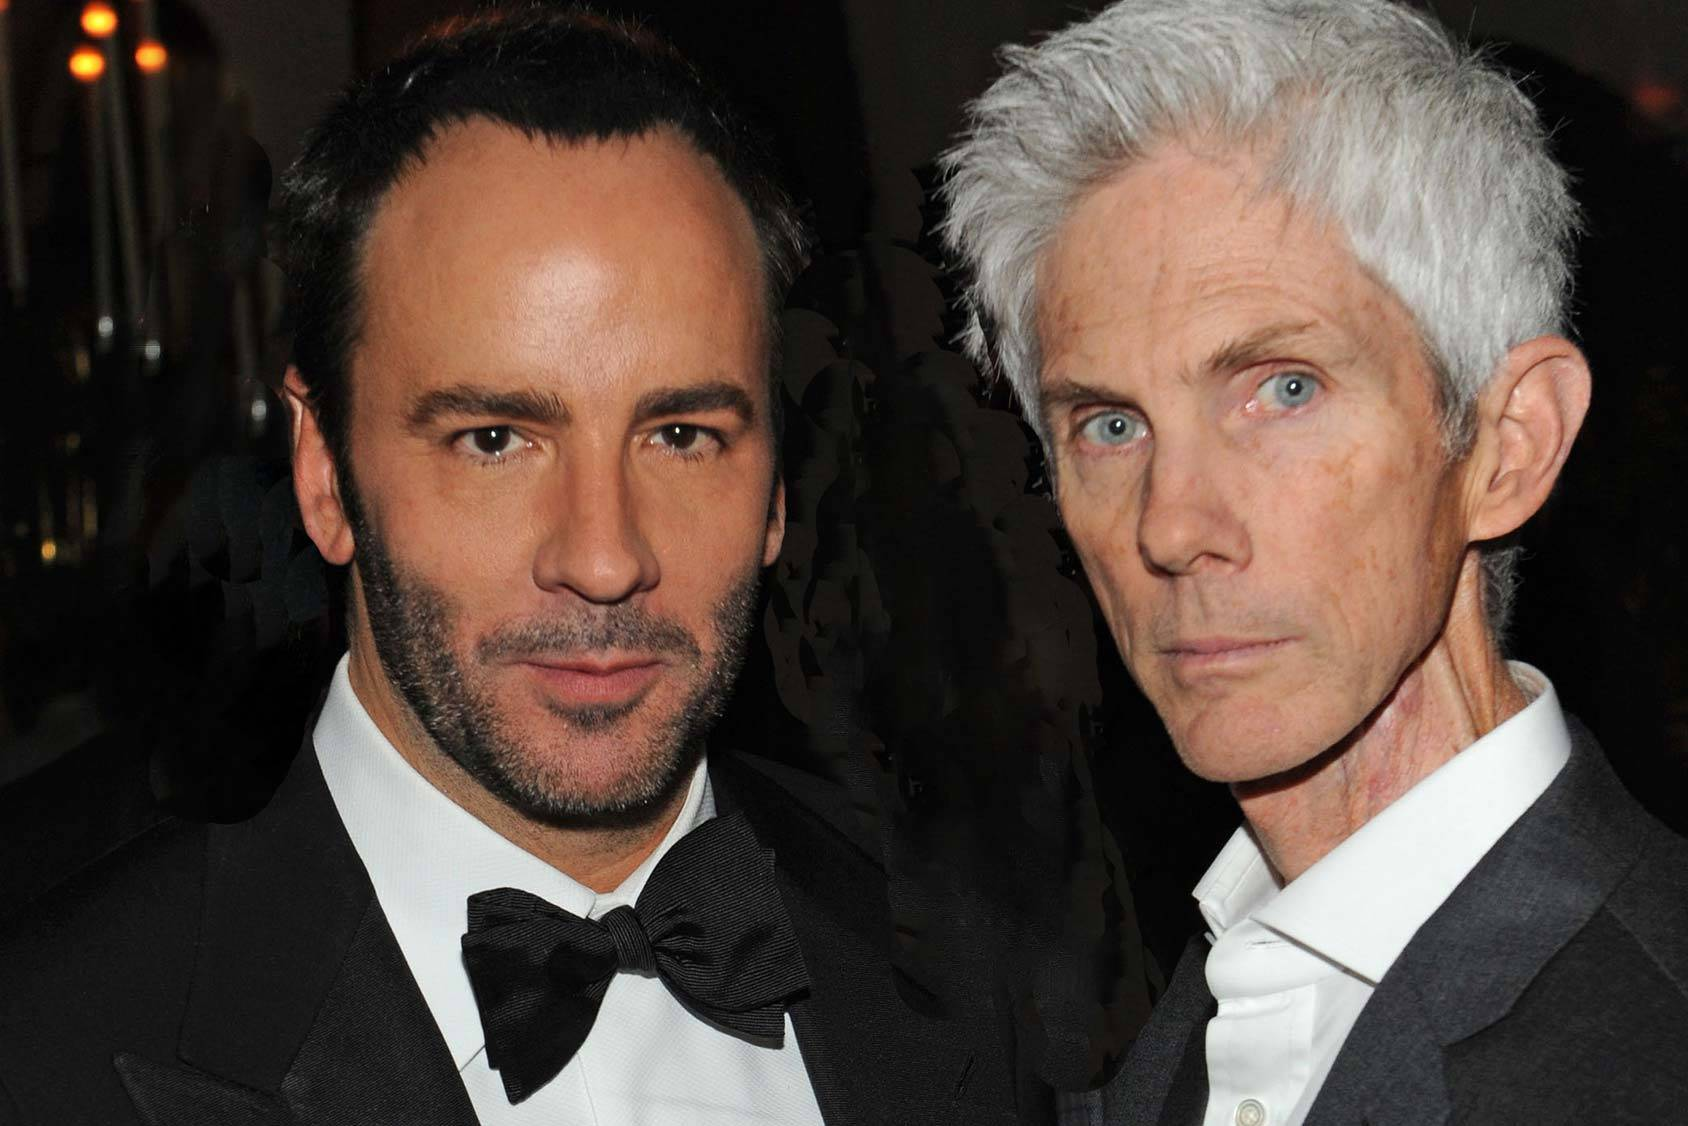 Fashion power couple Tom Ford and Richard Buckley, Getty Images.